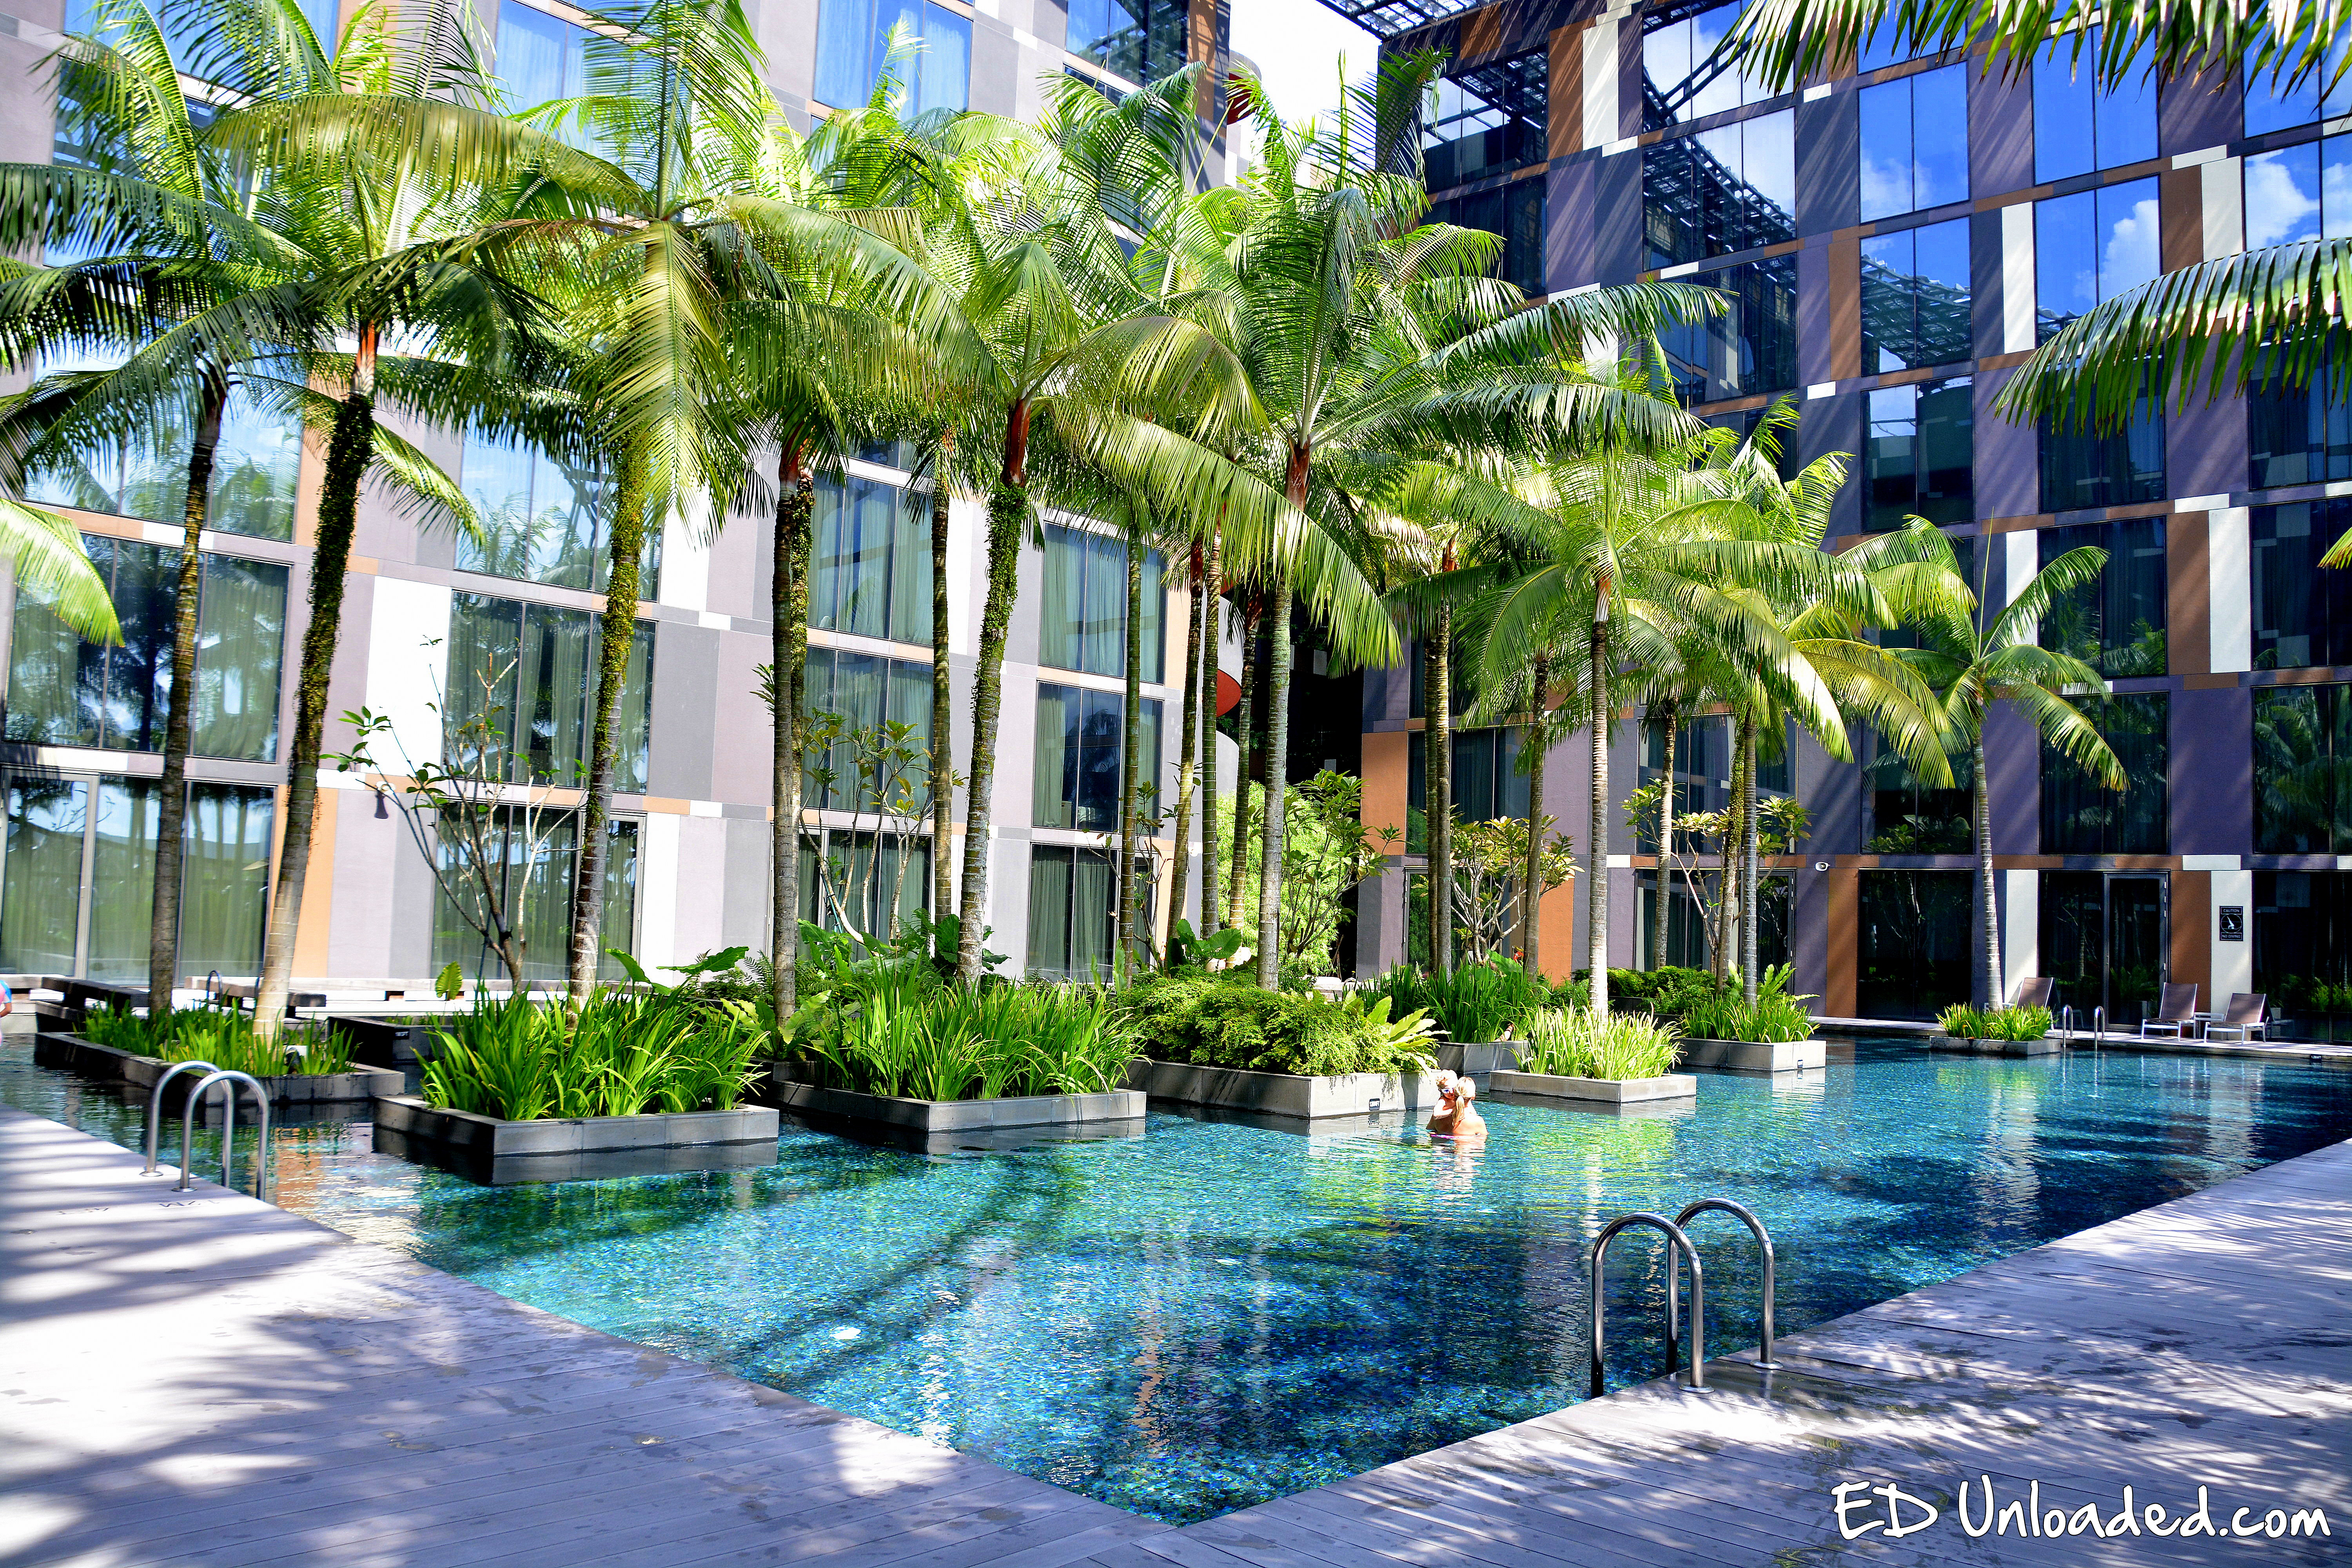 Crowne plaza airport hotel ed parenting - Least crowded swimming pool singapore ...